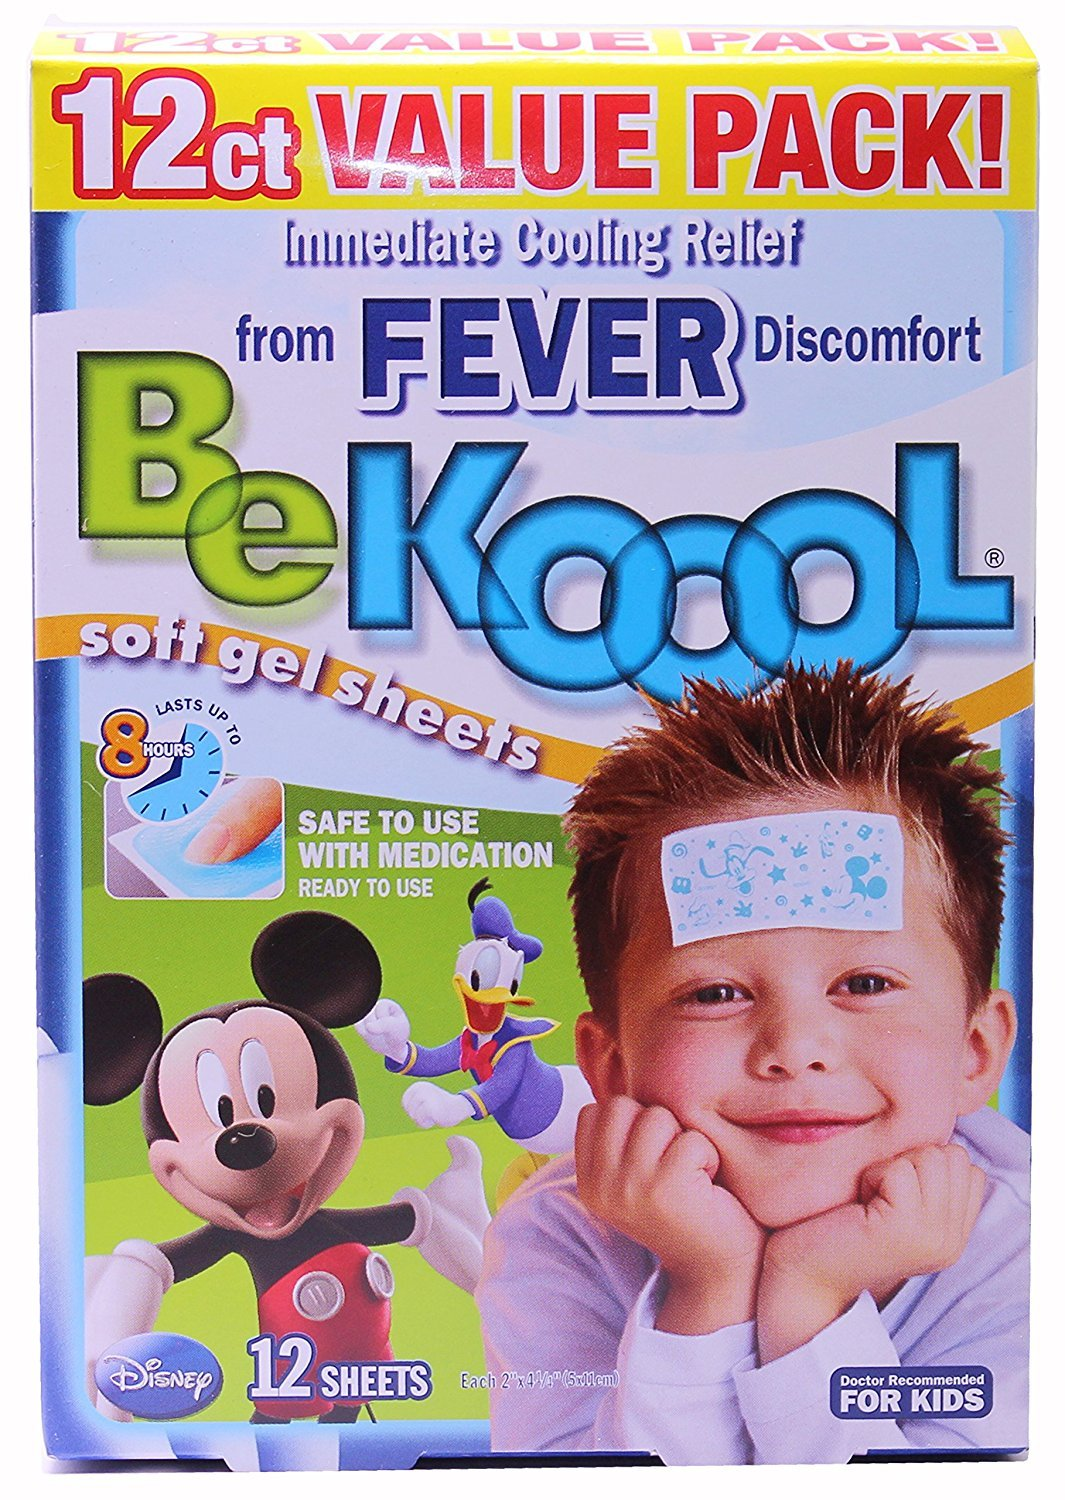 Be Koool Fever Soft Gel Sheets For Kids, Immediate Cooling Relief from Fever Discomfort, 12 Sheets by BeKoool